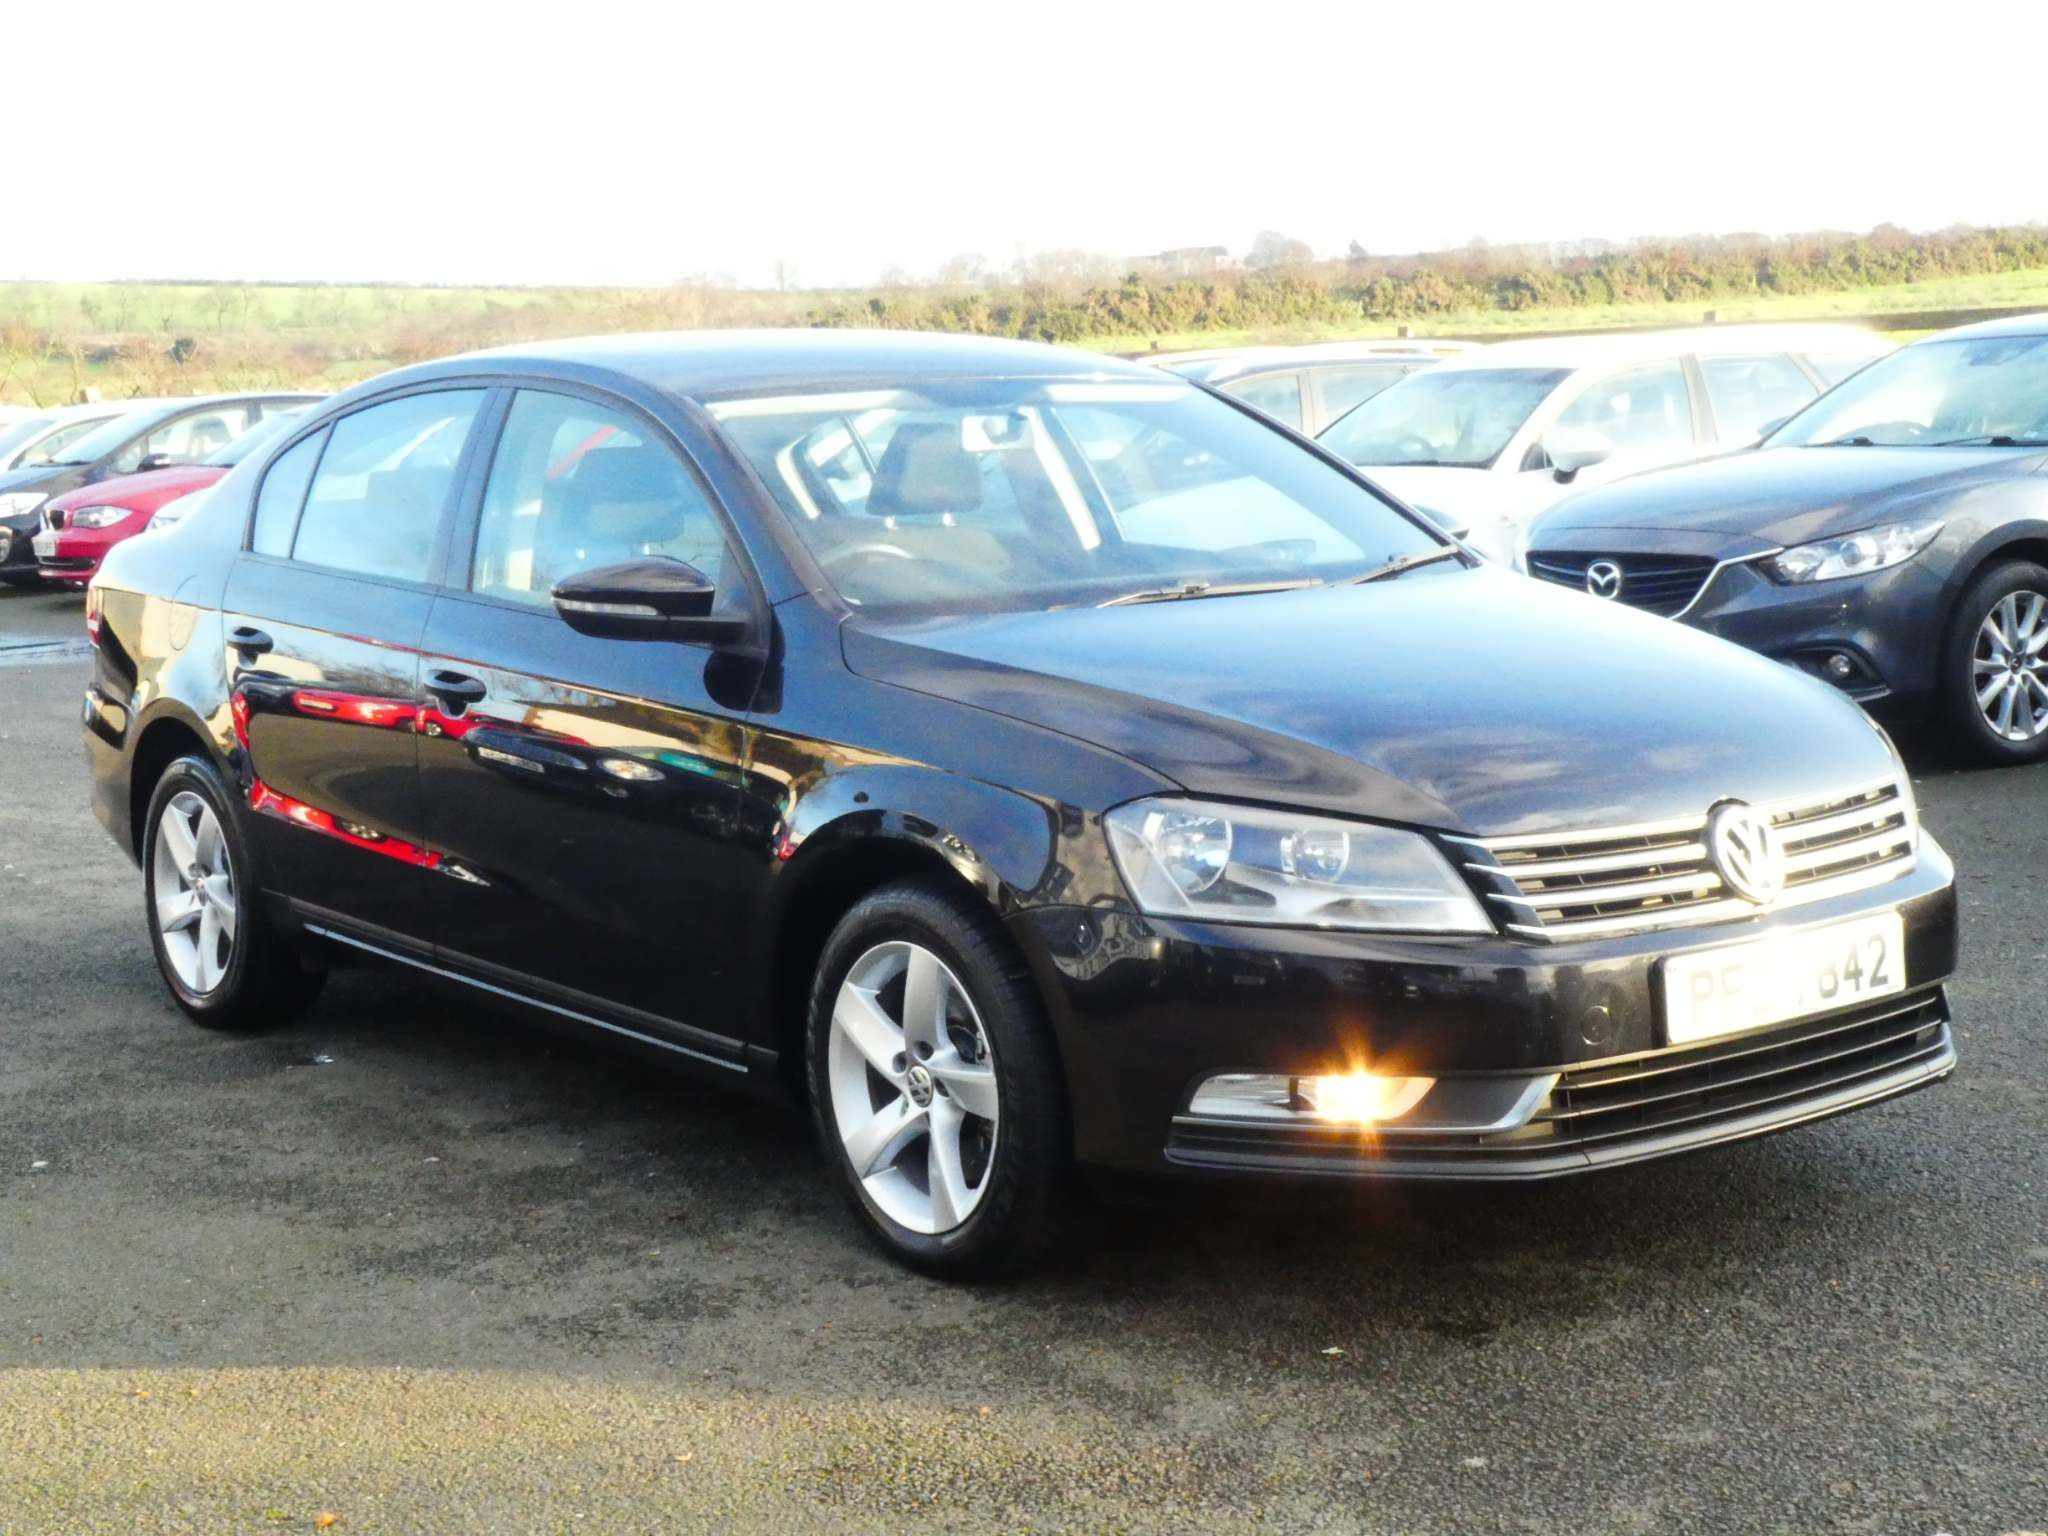 2013 VOLKSWAGEN Passat 1.6 TDI BlueMotion Tech S (s/s) Diesel Manual excellent example full history – FC Motors 52 Carntall Rd, Newtownabbey BT36 5SD